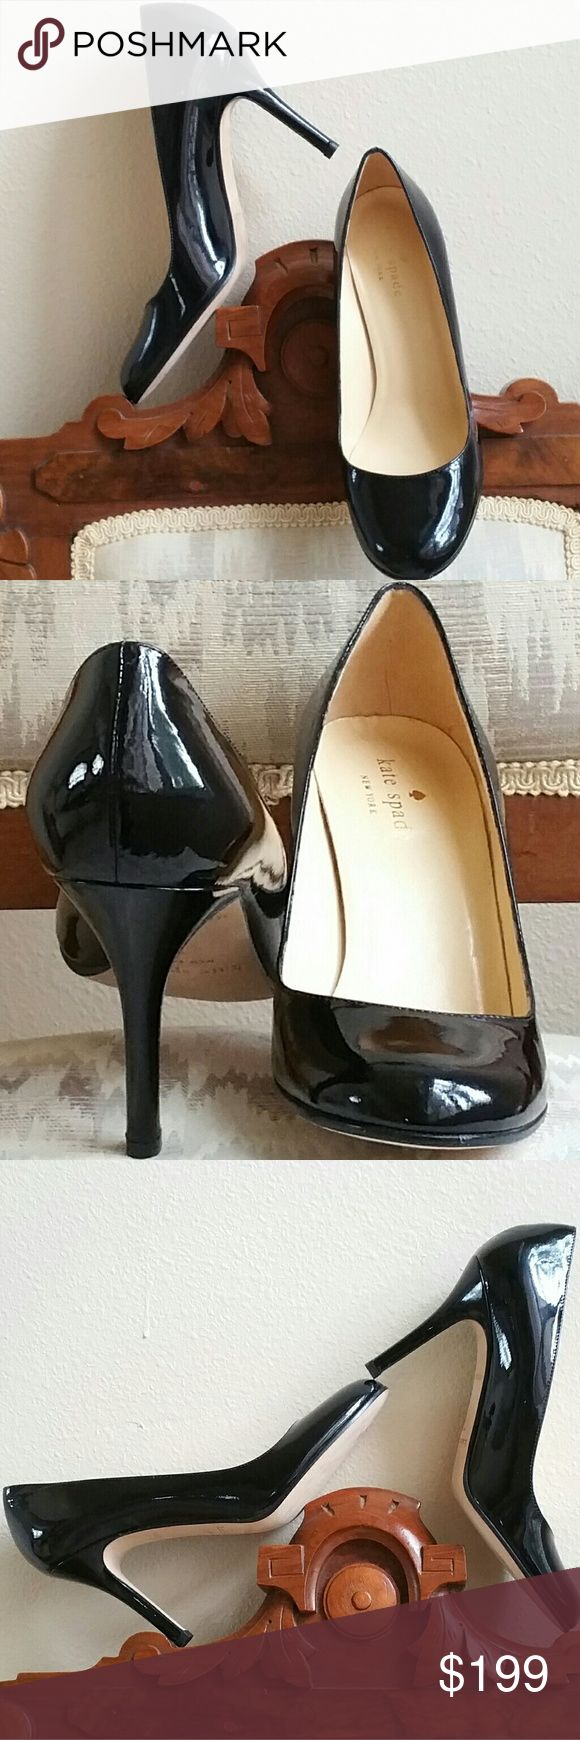 Kate Spade NWOT Patent Leather Heels Kate Spade NWOT Patent Leather Heels. NEVER WORN. Not a scuff in sight! Absolutely gorgeous shoes in the perfect height and a fabulous compliment to your business suit by day and little black dress by night. You will love these shoes! Pics are of actual shoes for sale. The patent leather looks like glass! 10L 3W 2.5H. Kate Spade Shoes Heels